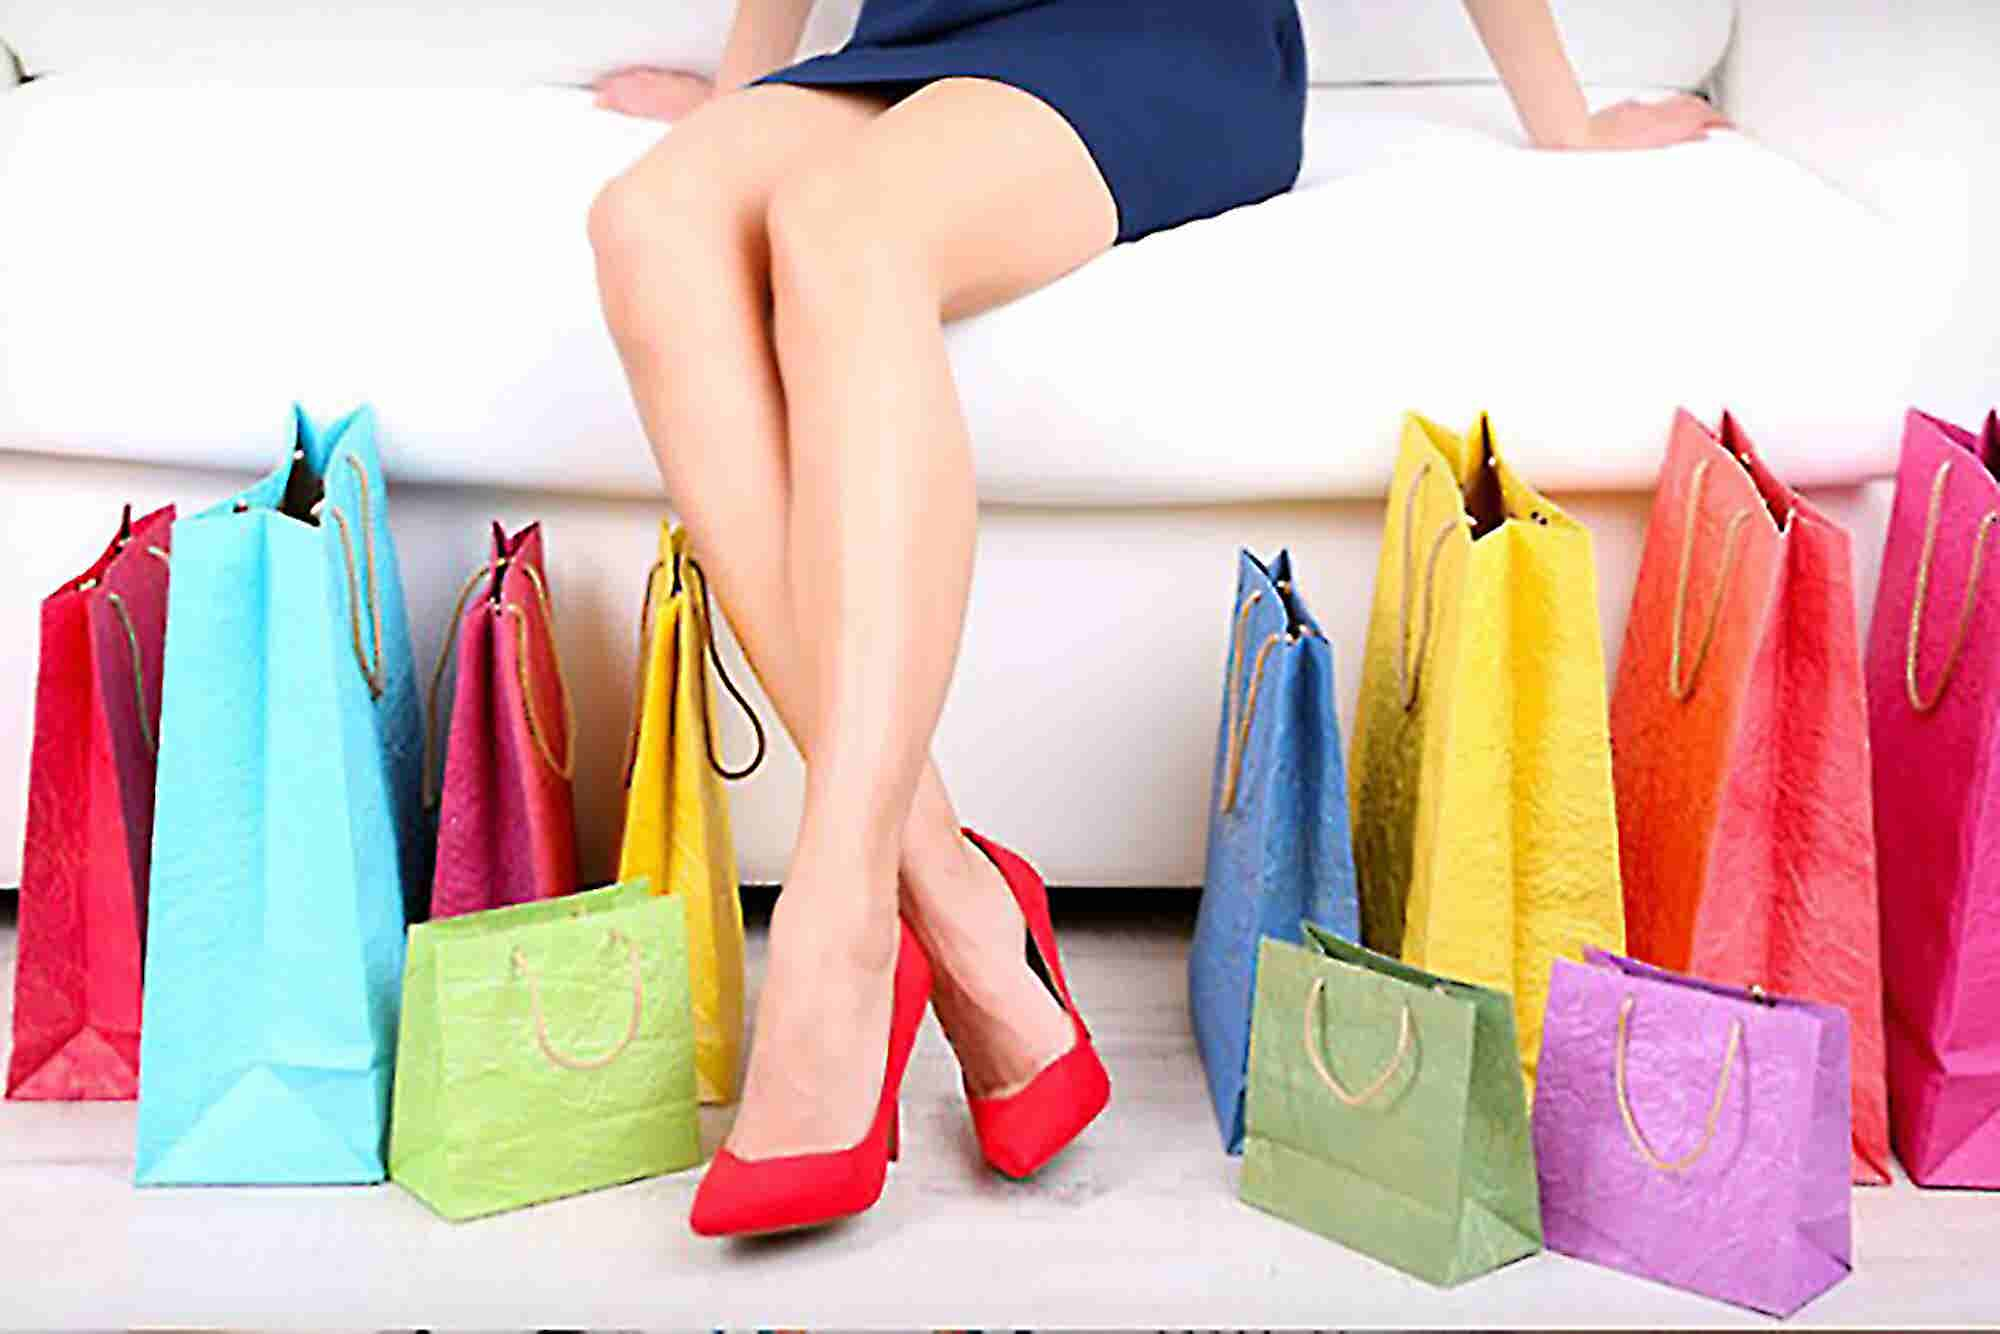 #7 Retail Trends You Can't Afford to Miss